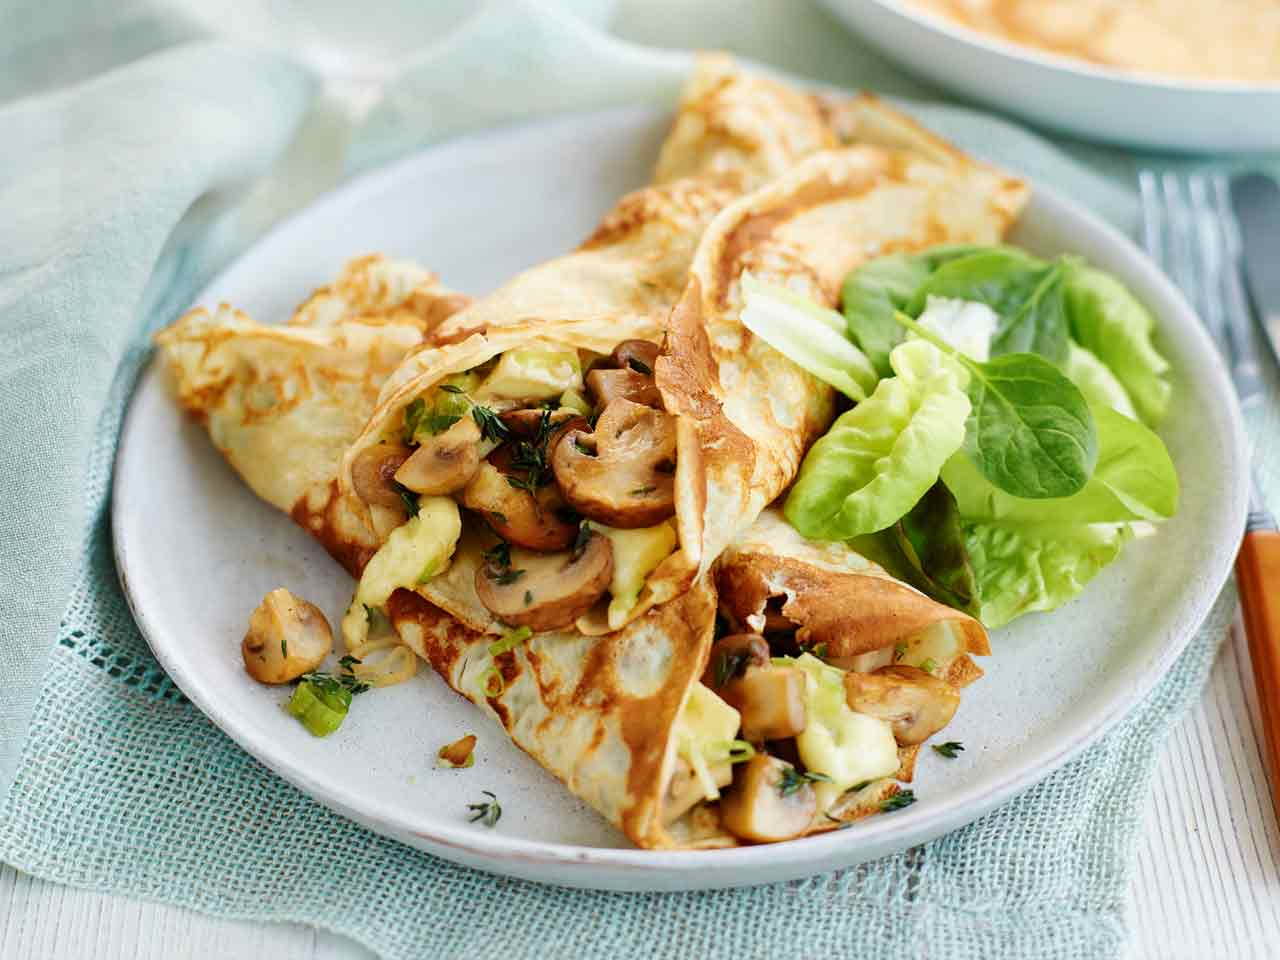 Garlic, mushroom and brie pancakes